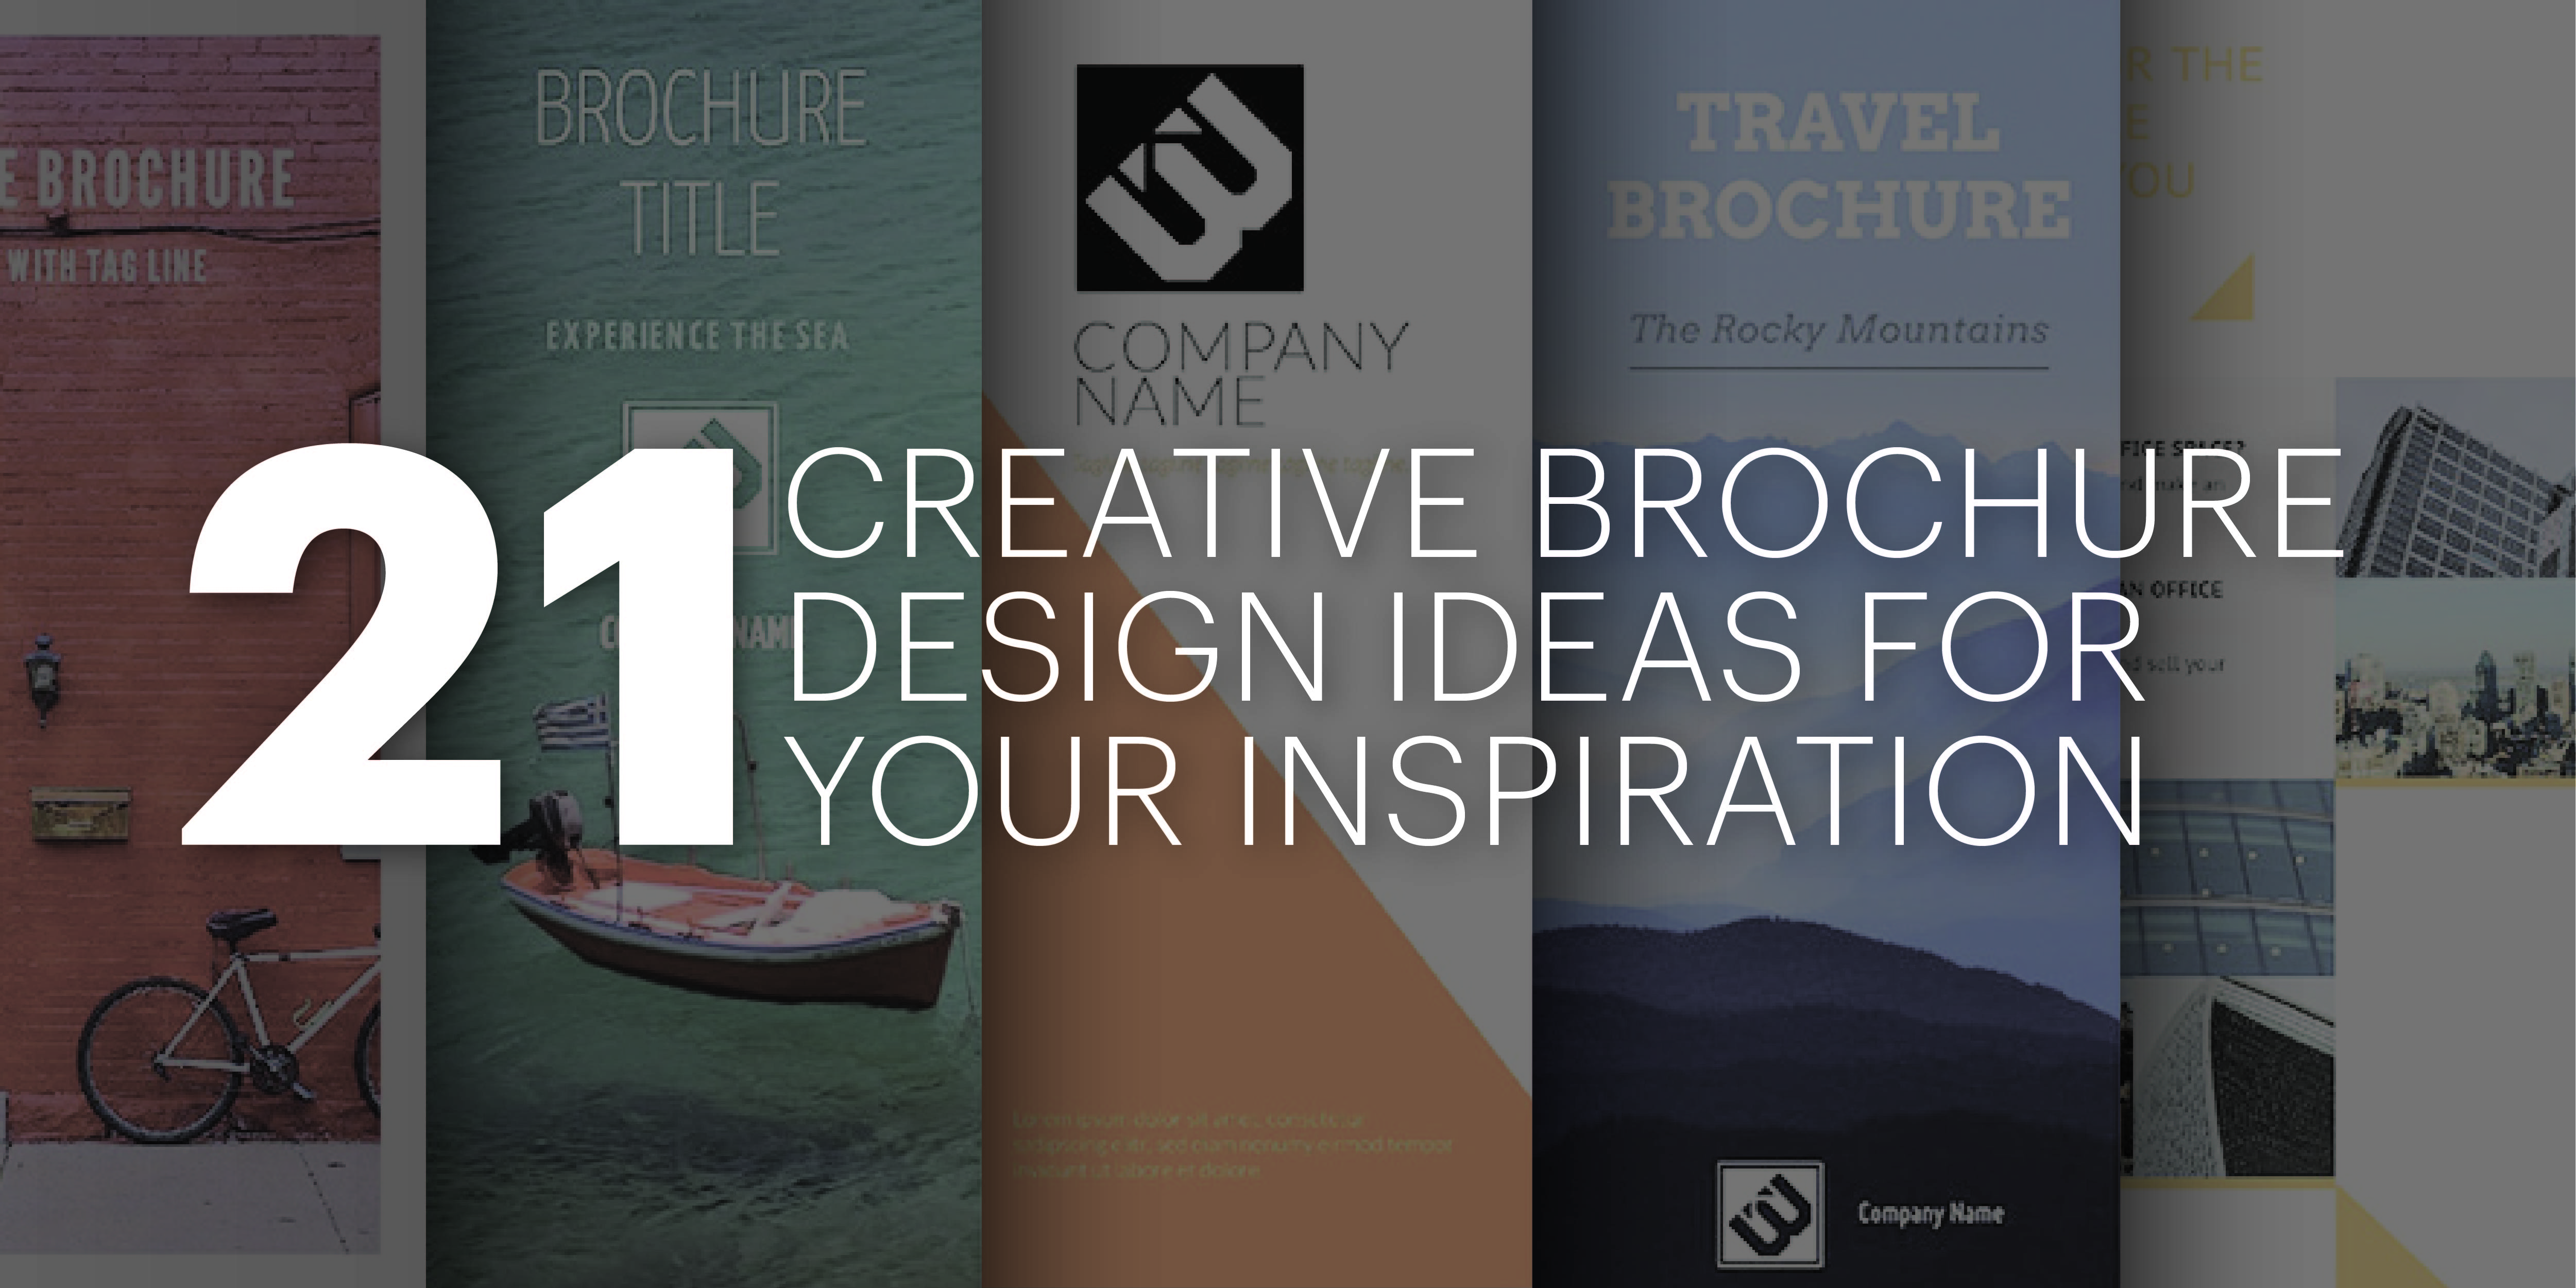 21 creative brochure design ideas for your inspiration - Brochure Design Ideas